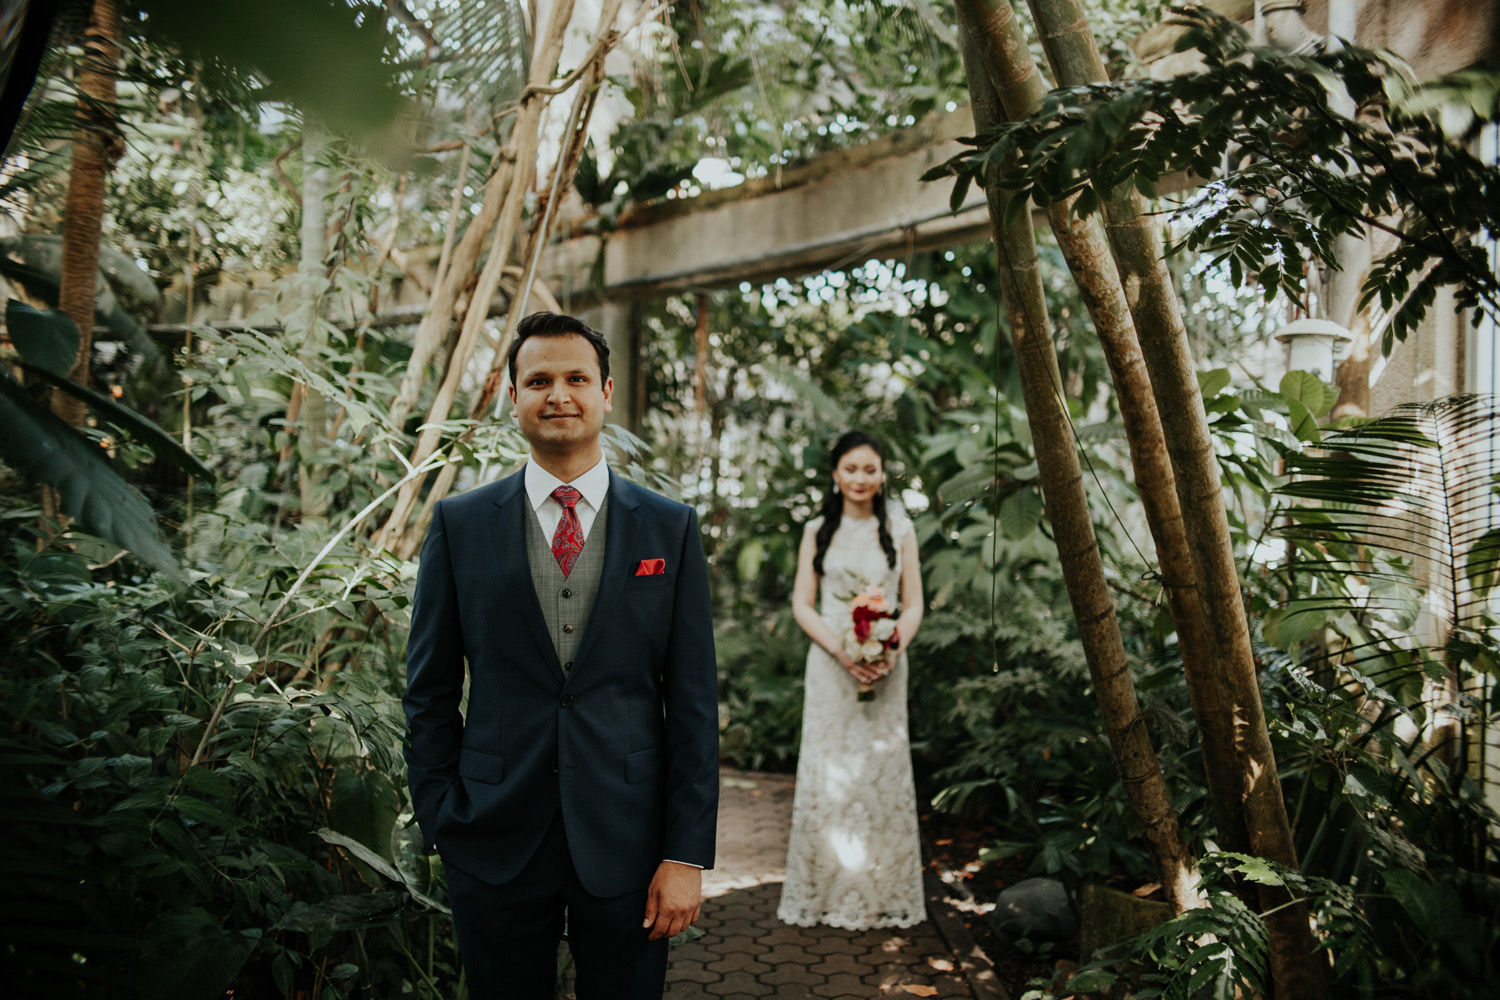 atlanta wedding photographers destination elopement photographer engagement photography atlanta botanical gardens_1020.jpg